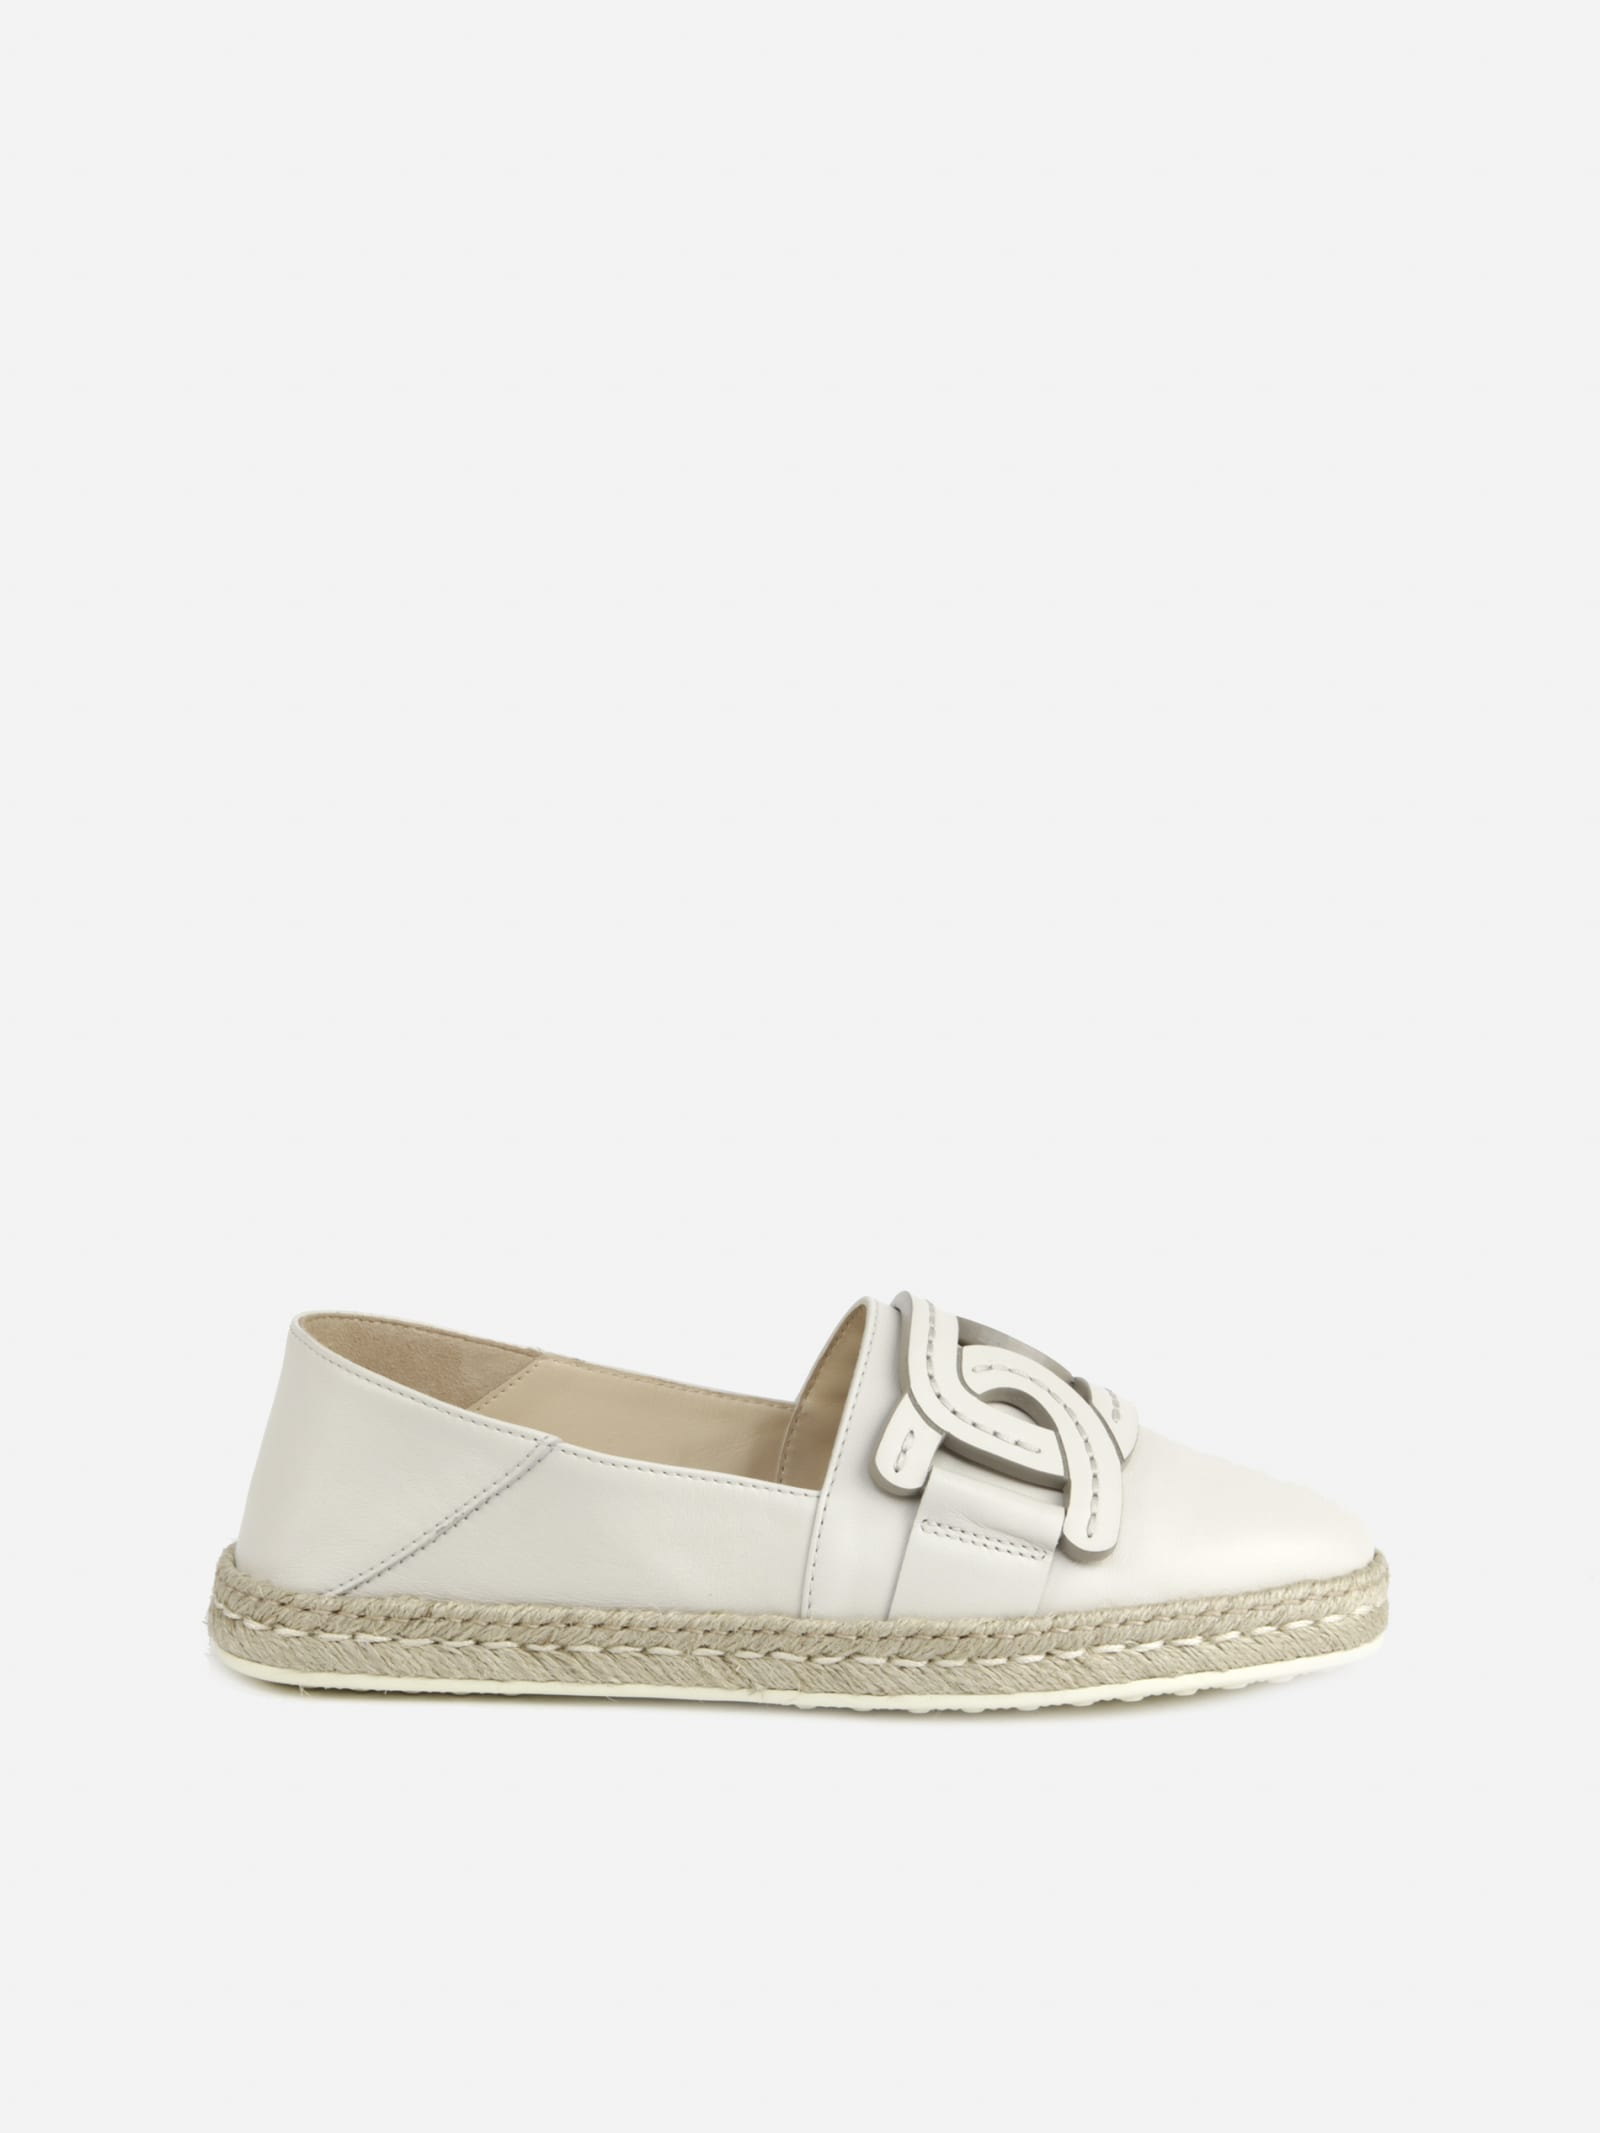 Tod's Leathers SLIP-ON WITH CHAIN DETAIL IN TONE-ON-TONE LEATHER